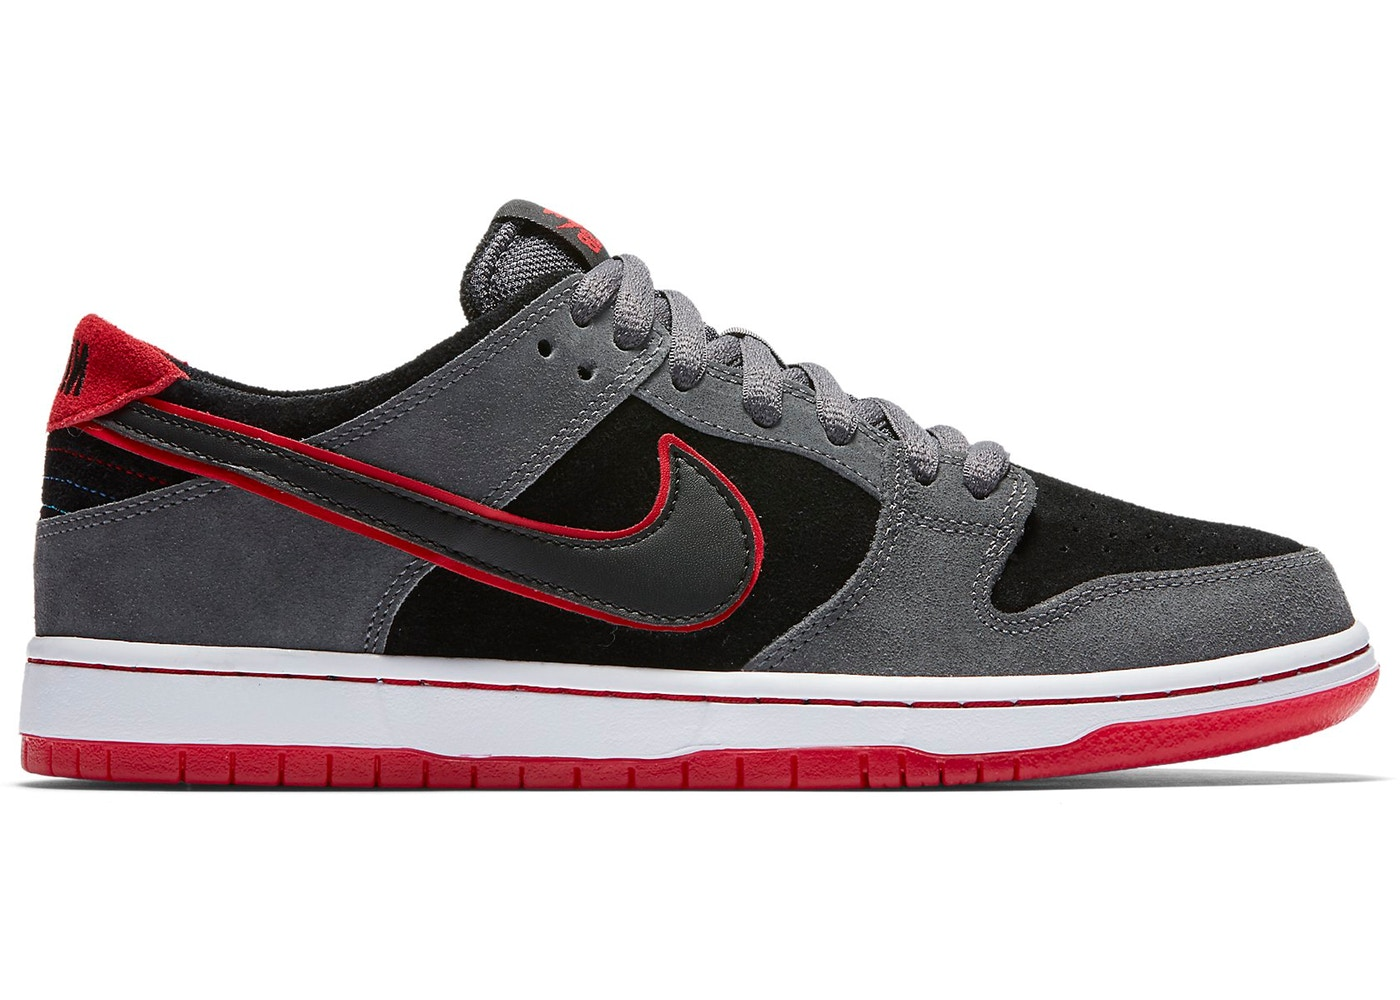 ナイキ NIKE エスビー ダンク スニーカー 【 SB DUNK LOW ISHOD WAIR DARK GREY UNIVERSITY REDWHITEBLACK 】 メンズ